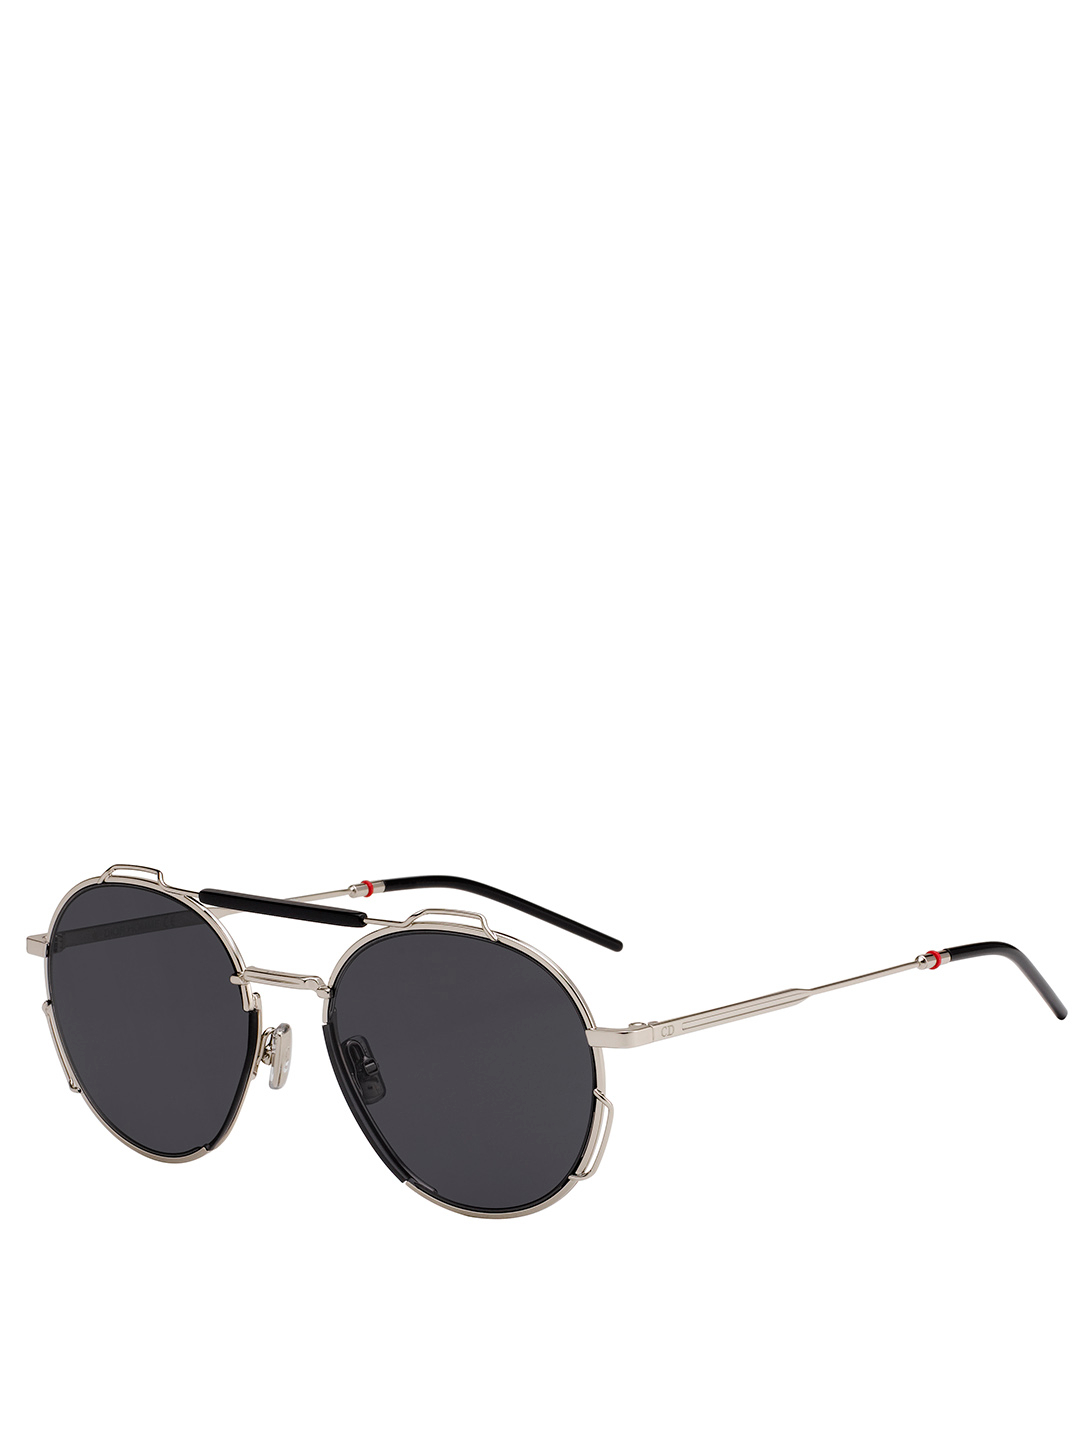 DIOR Dior0234S Round Aviator Sunglasses Men's Black